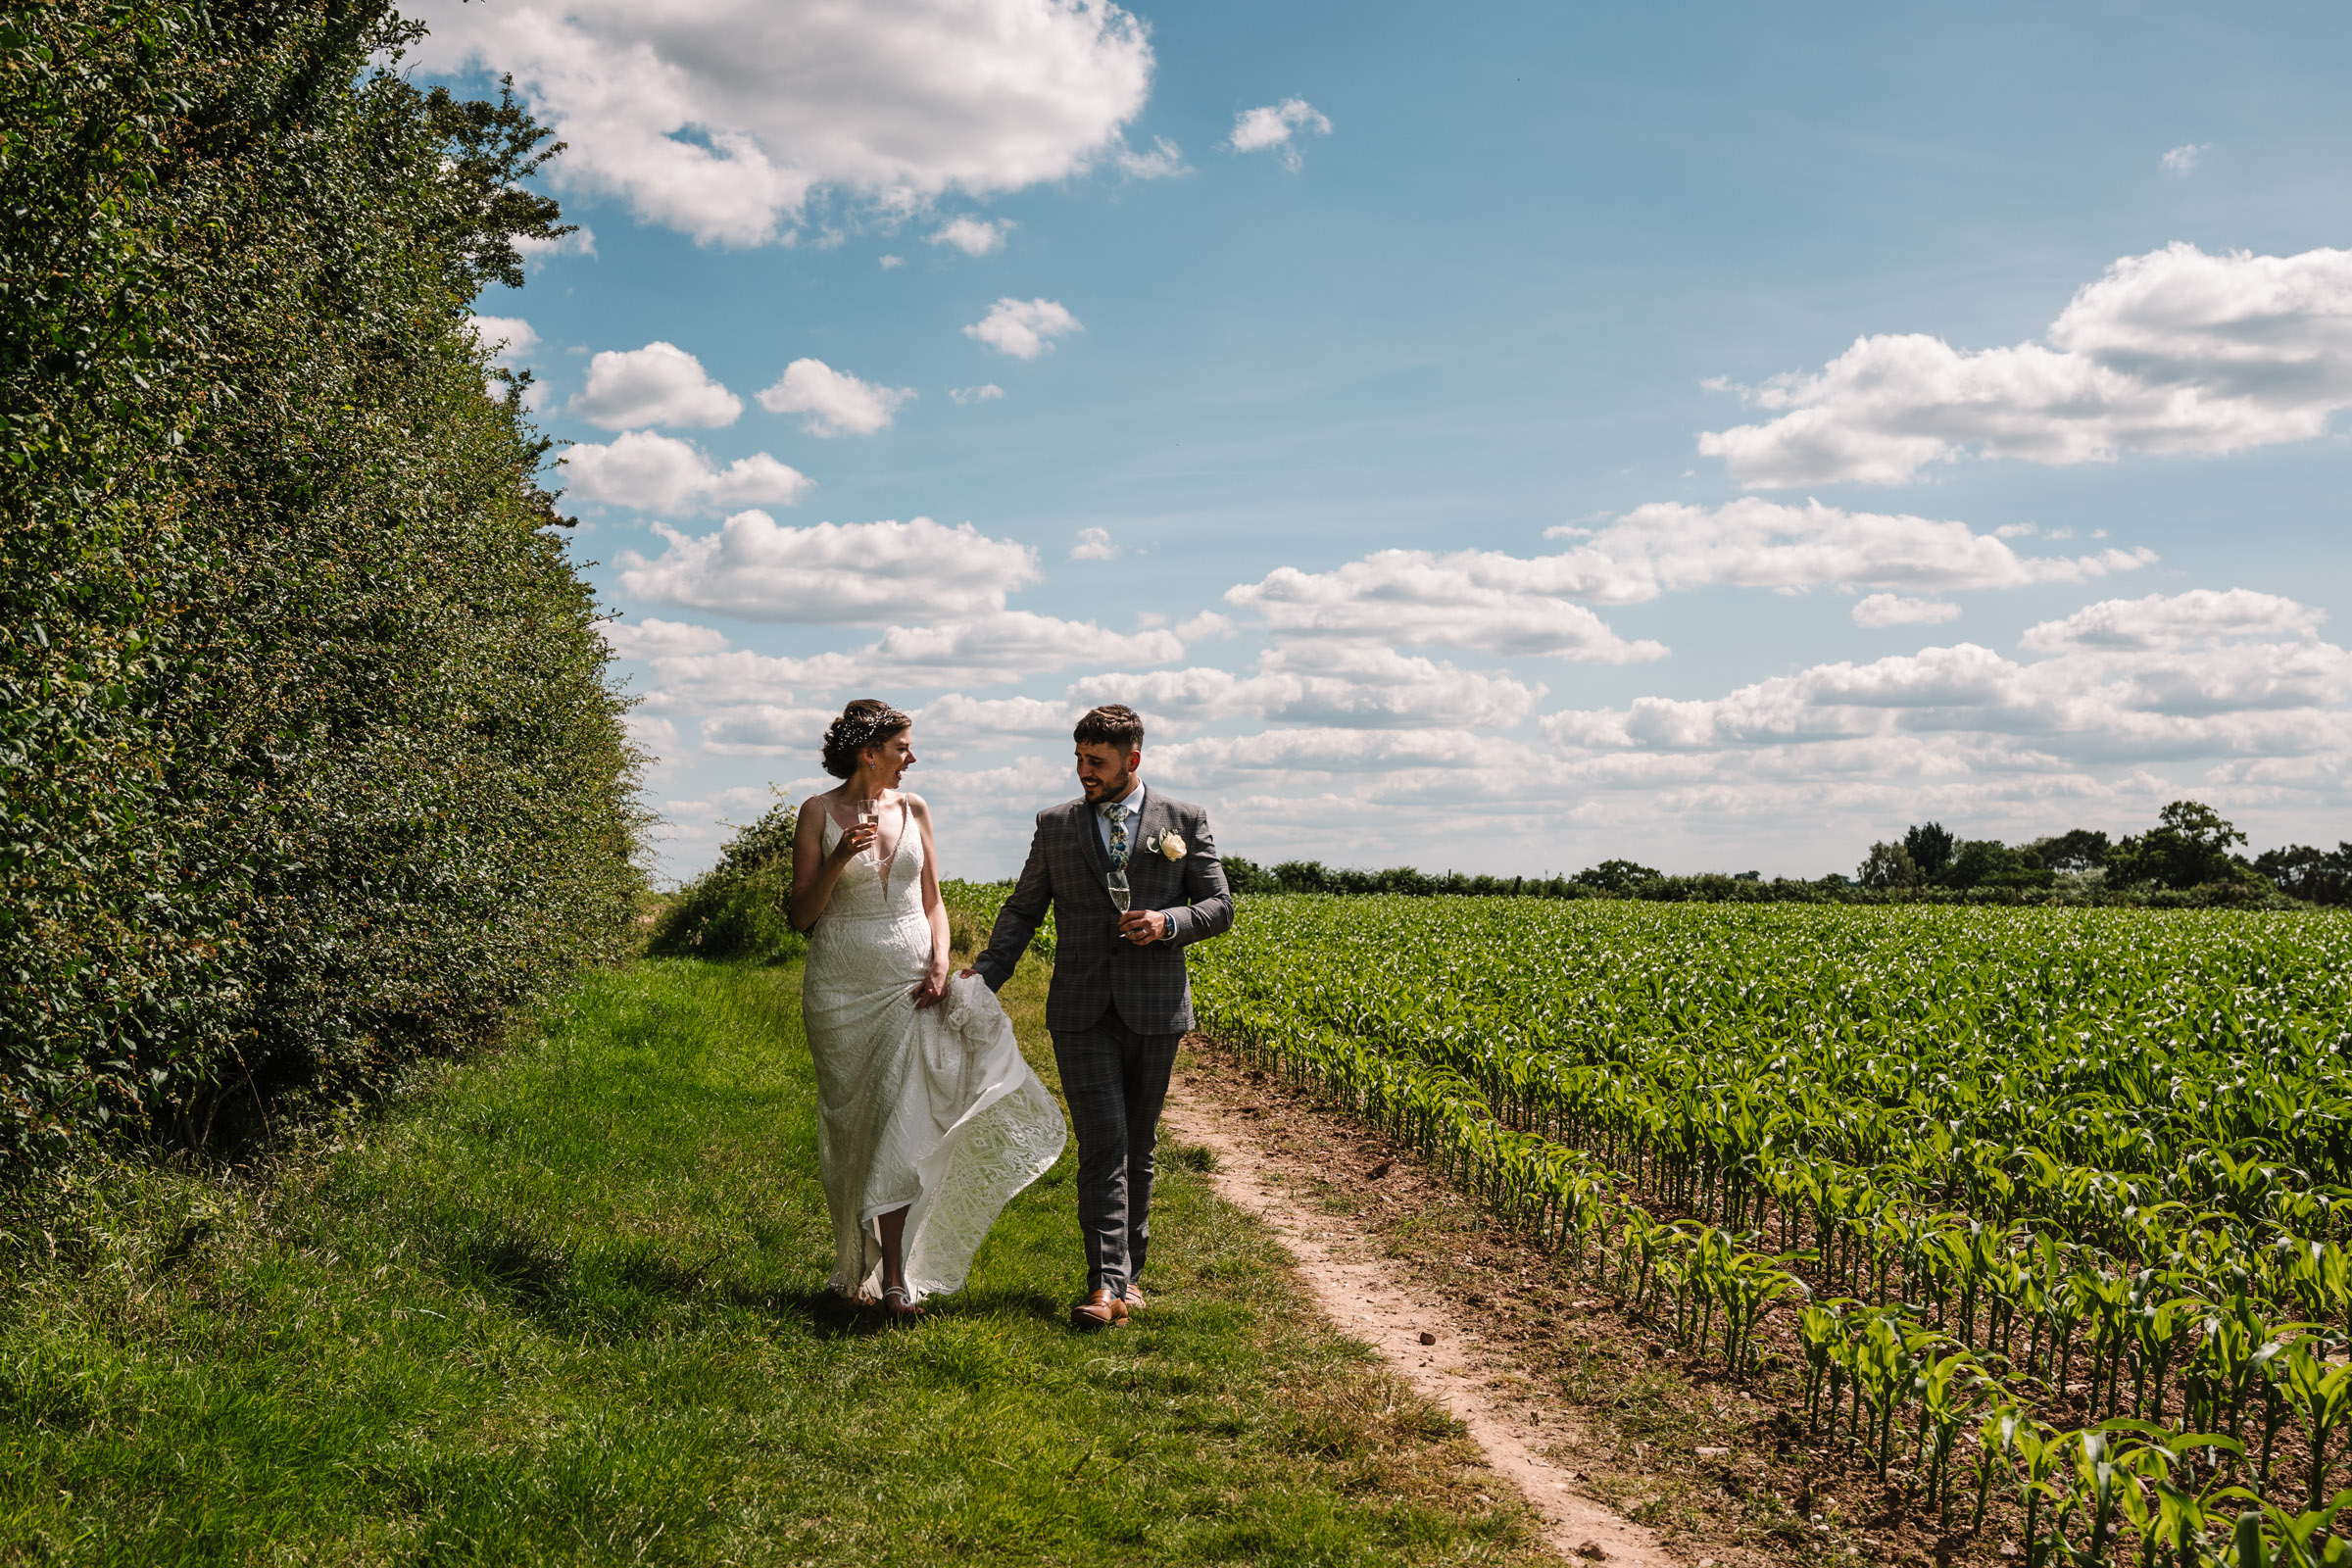 bride and groom walking down field in Kenilworth, holding champagne